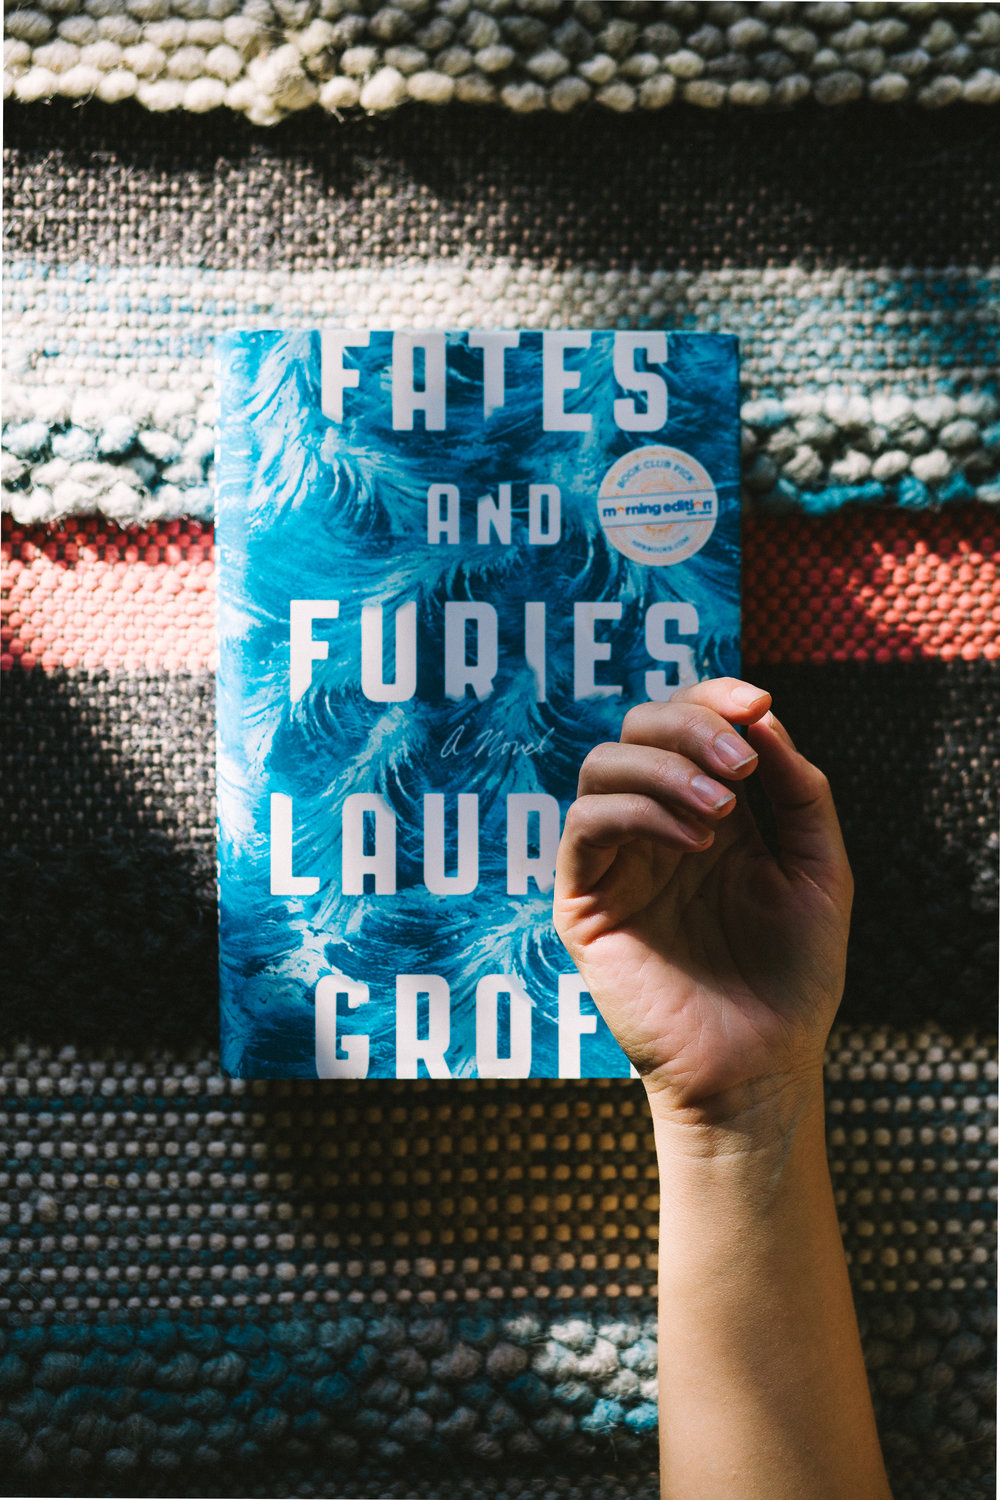 Fates & Furies   by Laura Groff